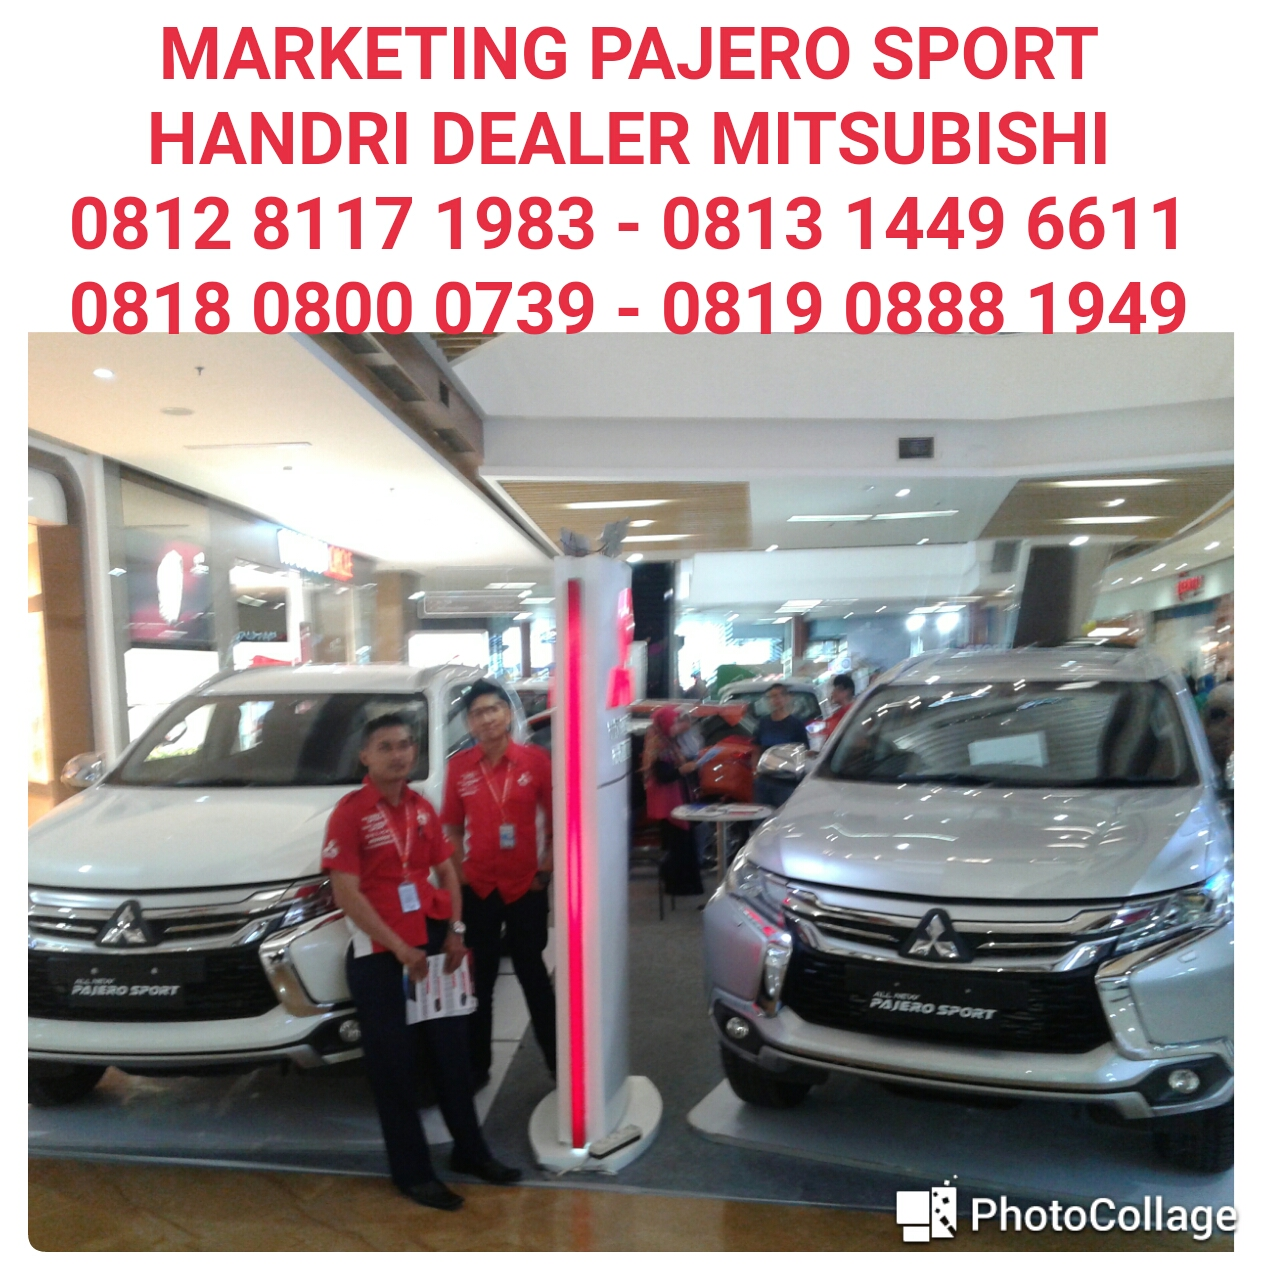 marketing pajero sport